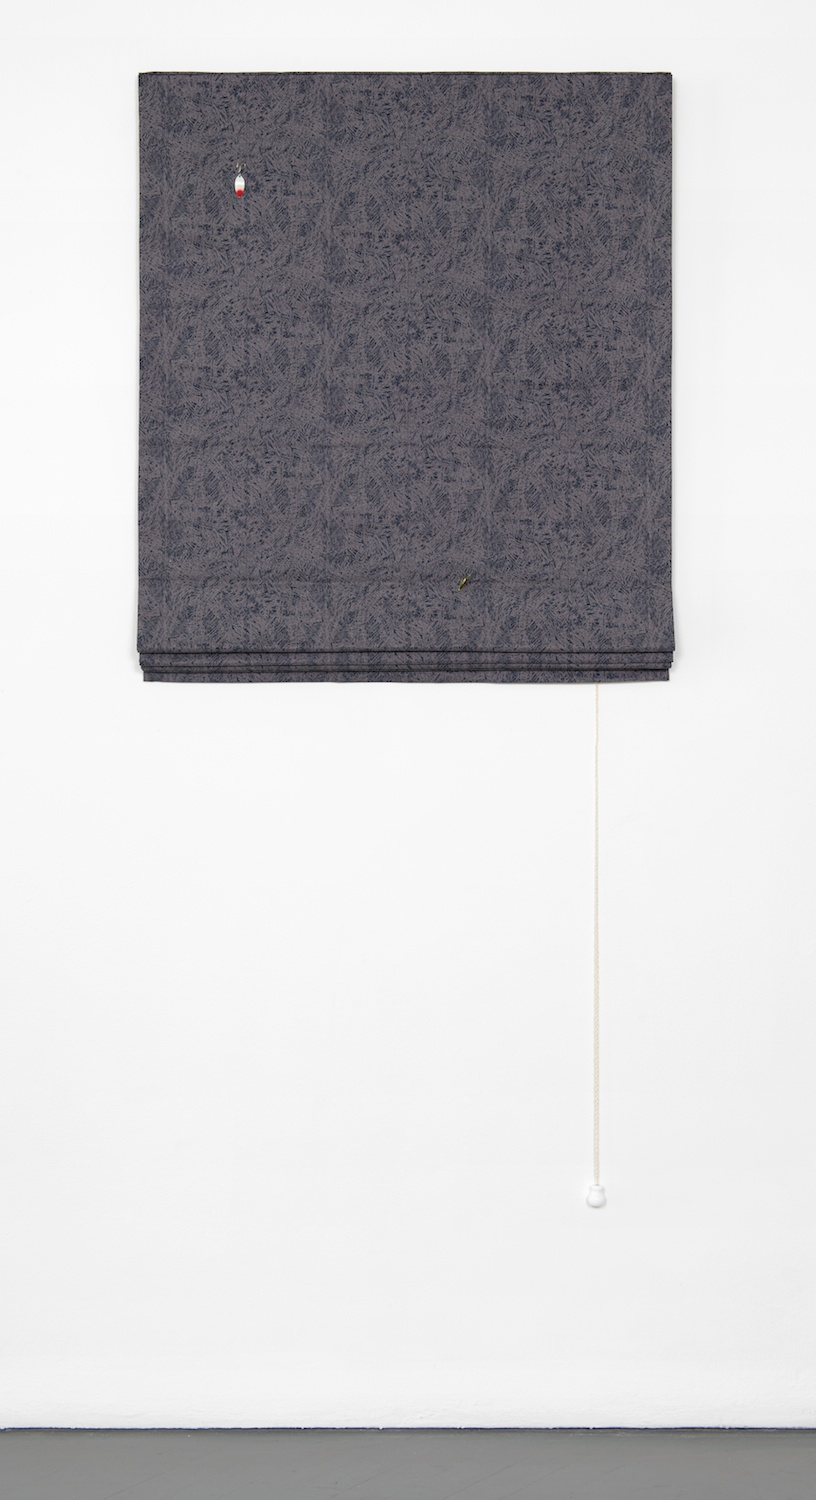 Paul Cowan  Untitled  2013 Fabric, lures, hardware 66h x 32w in  PC060